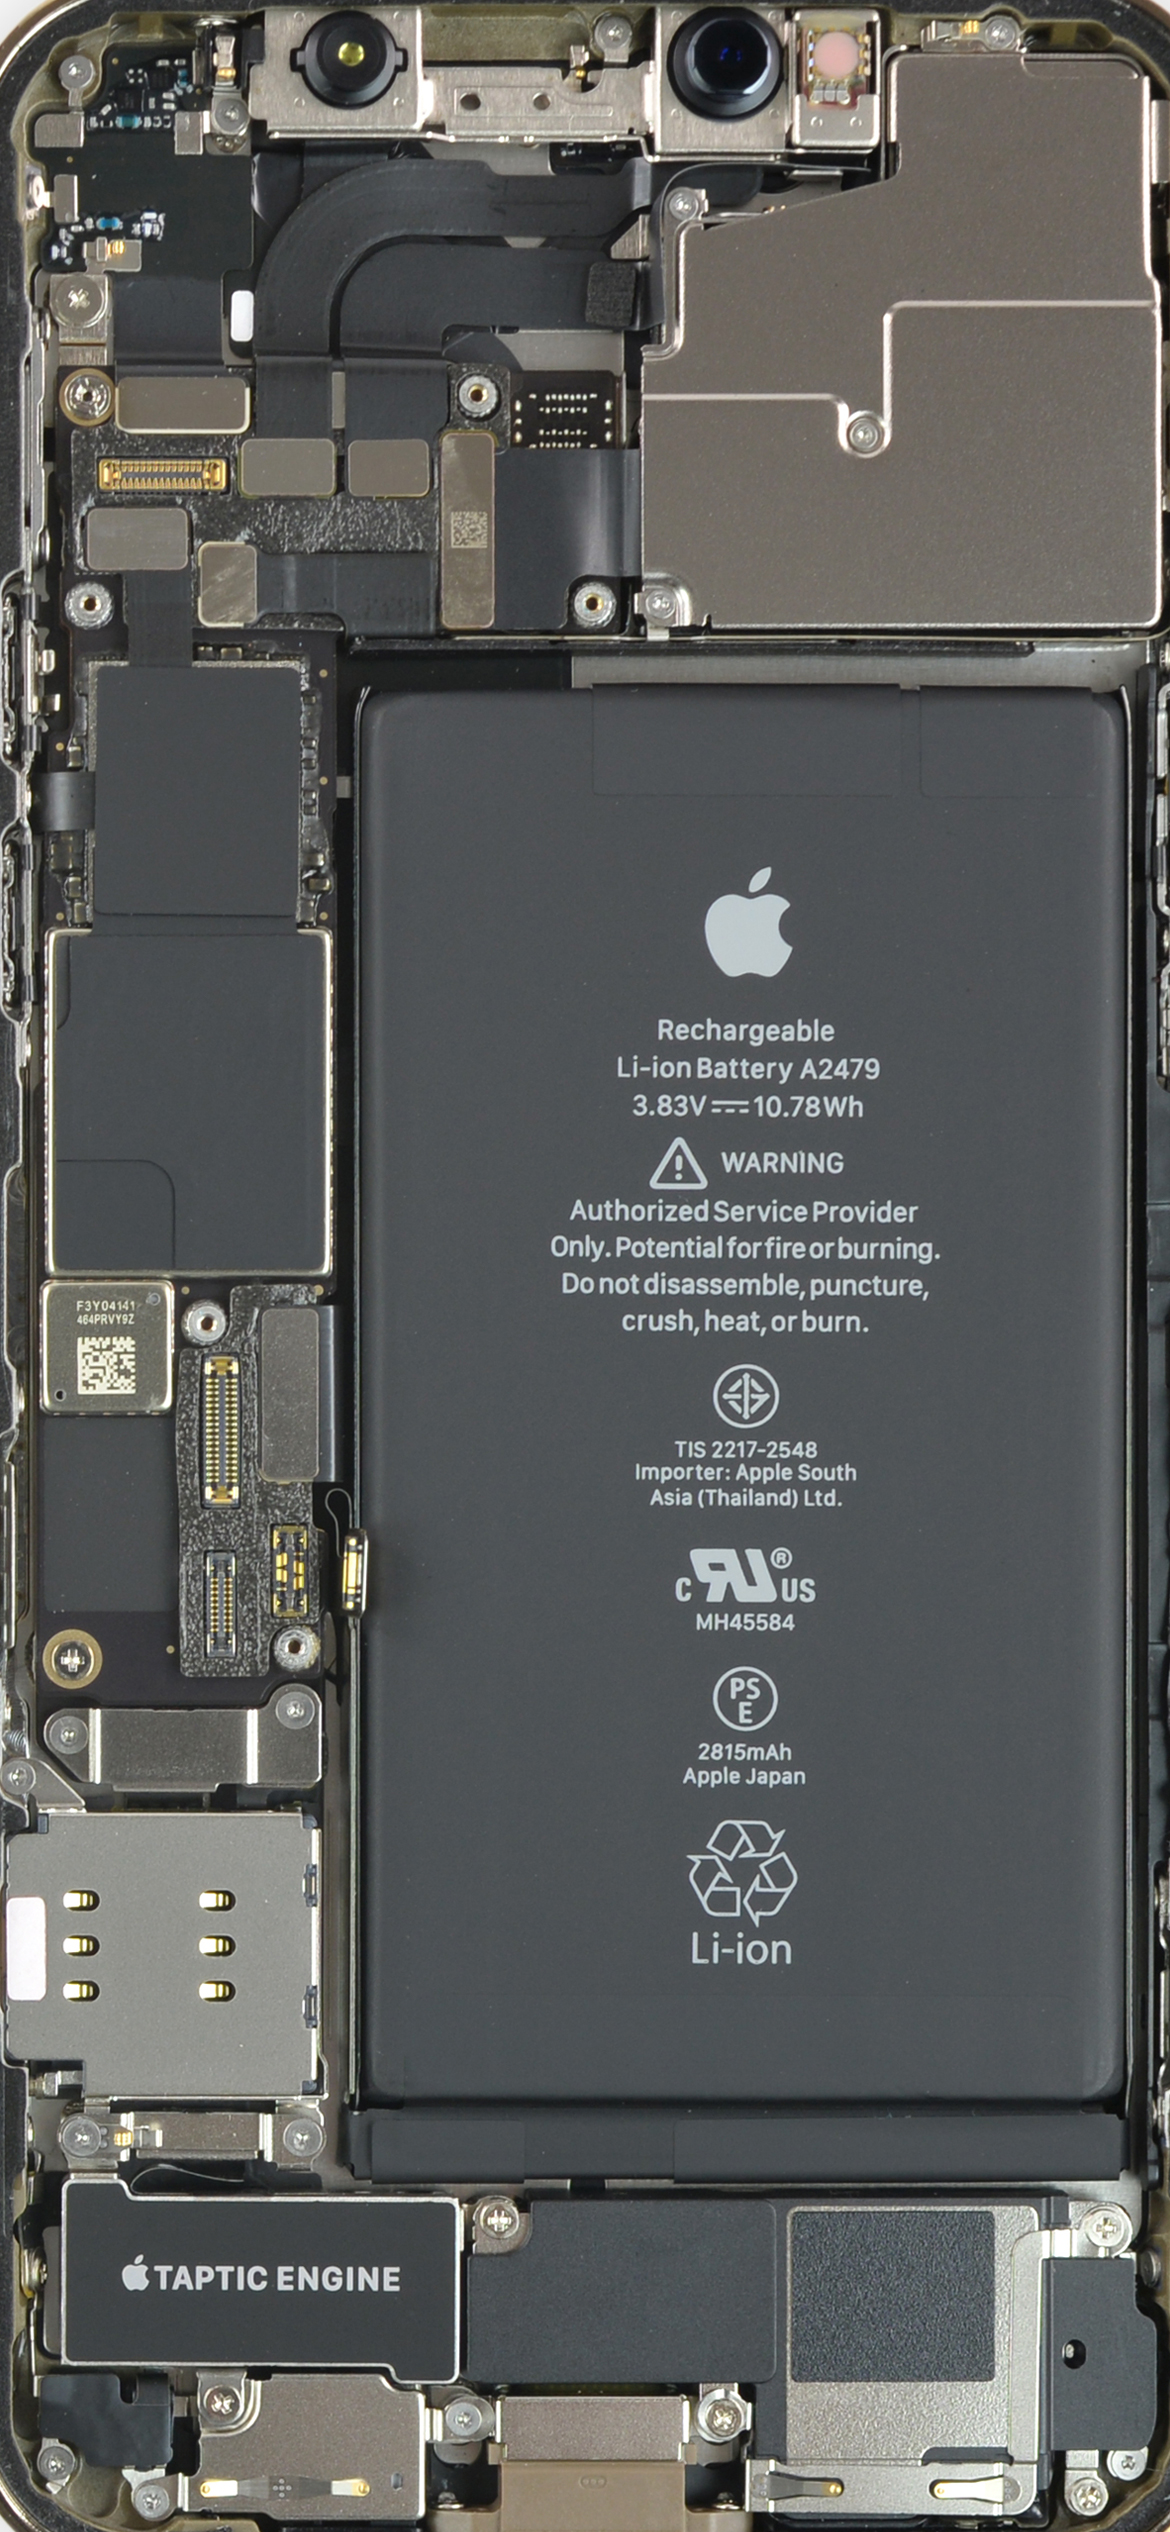 iPhone 12 Pro internals wallpaper